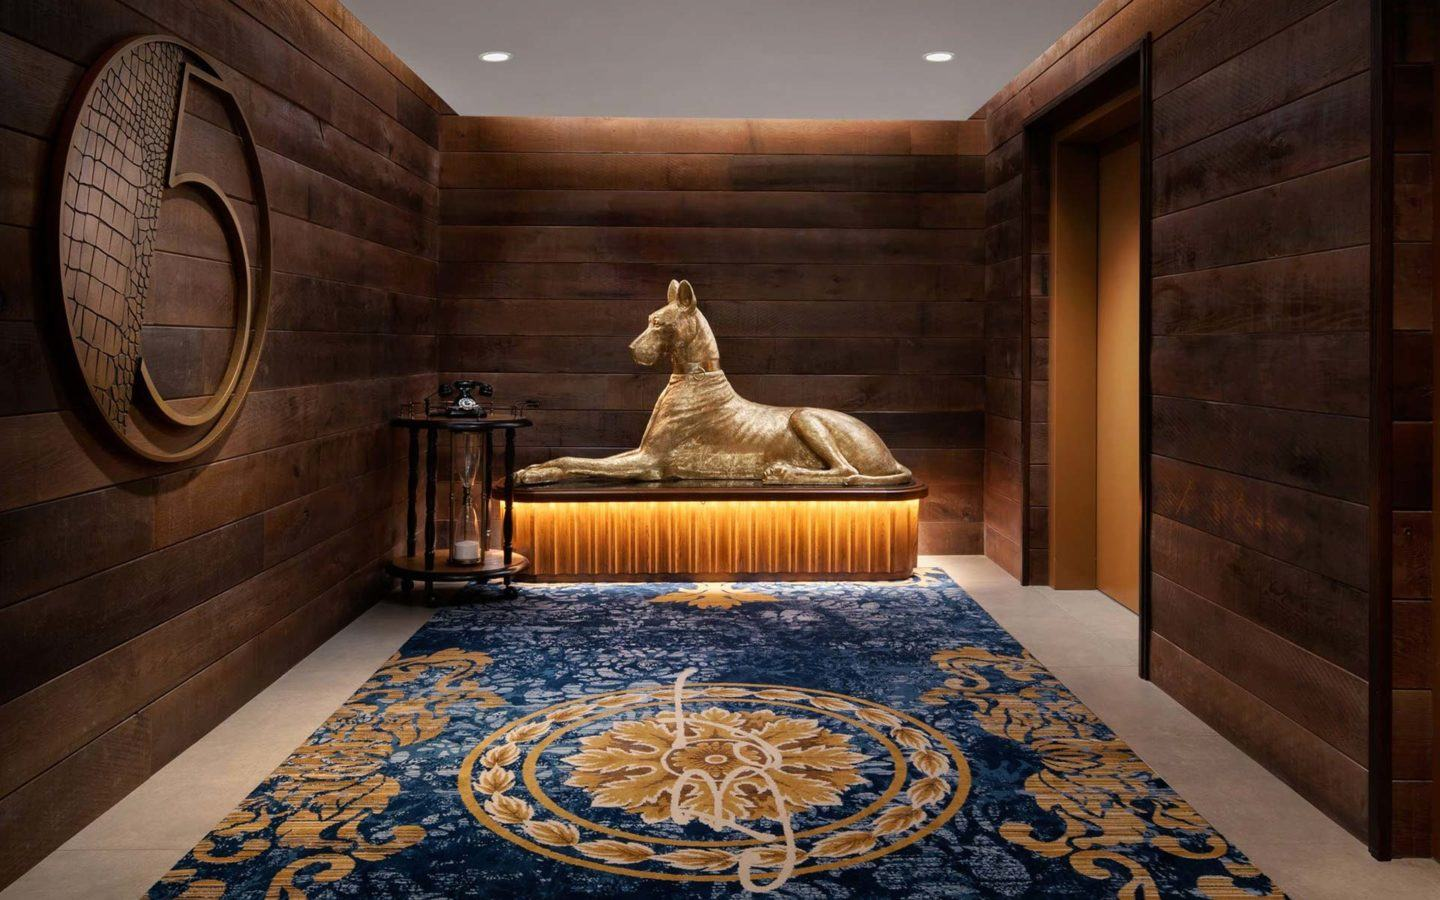 a stature of a large sitting dog in front of the elevators in a luxury hotel lobby